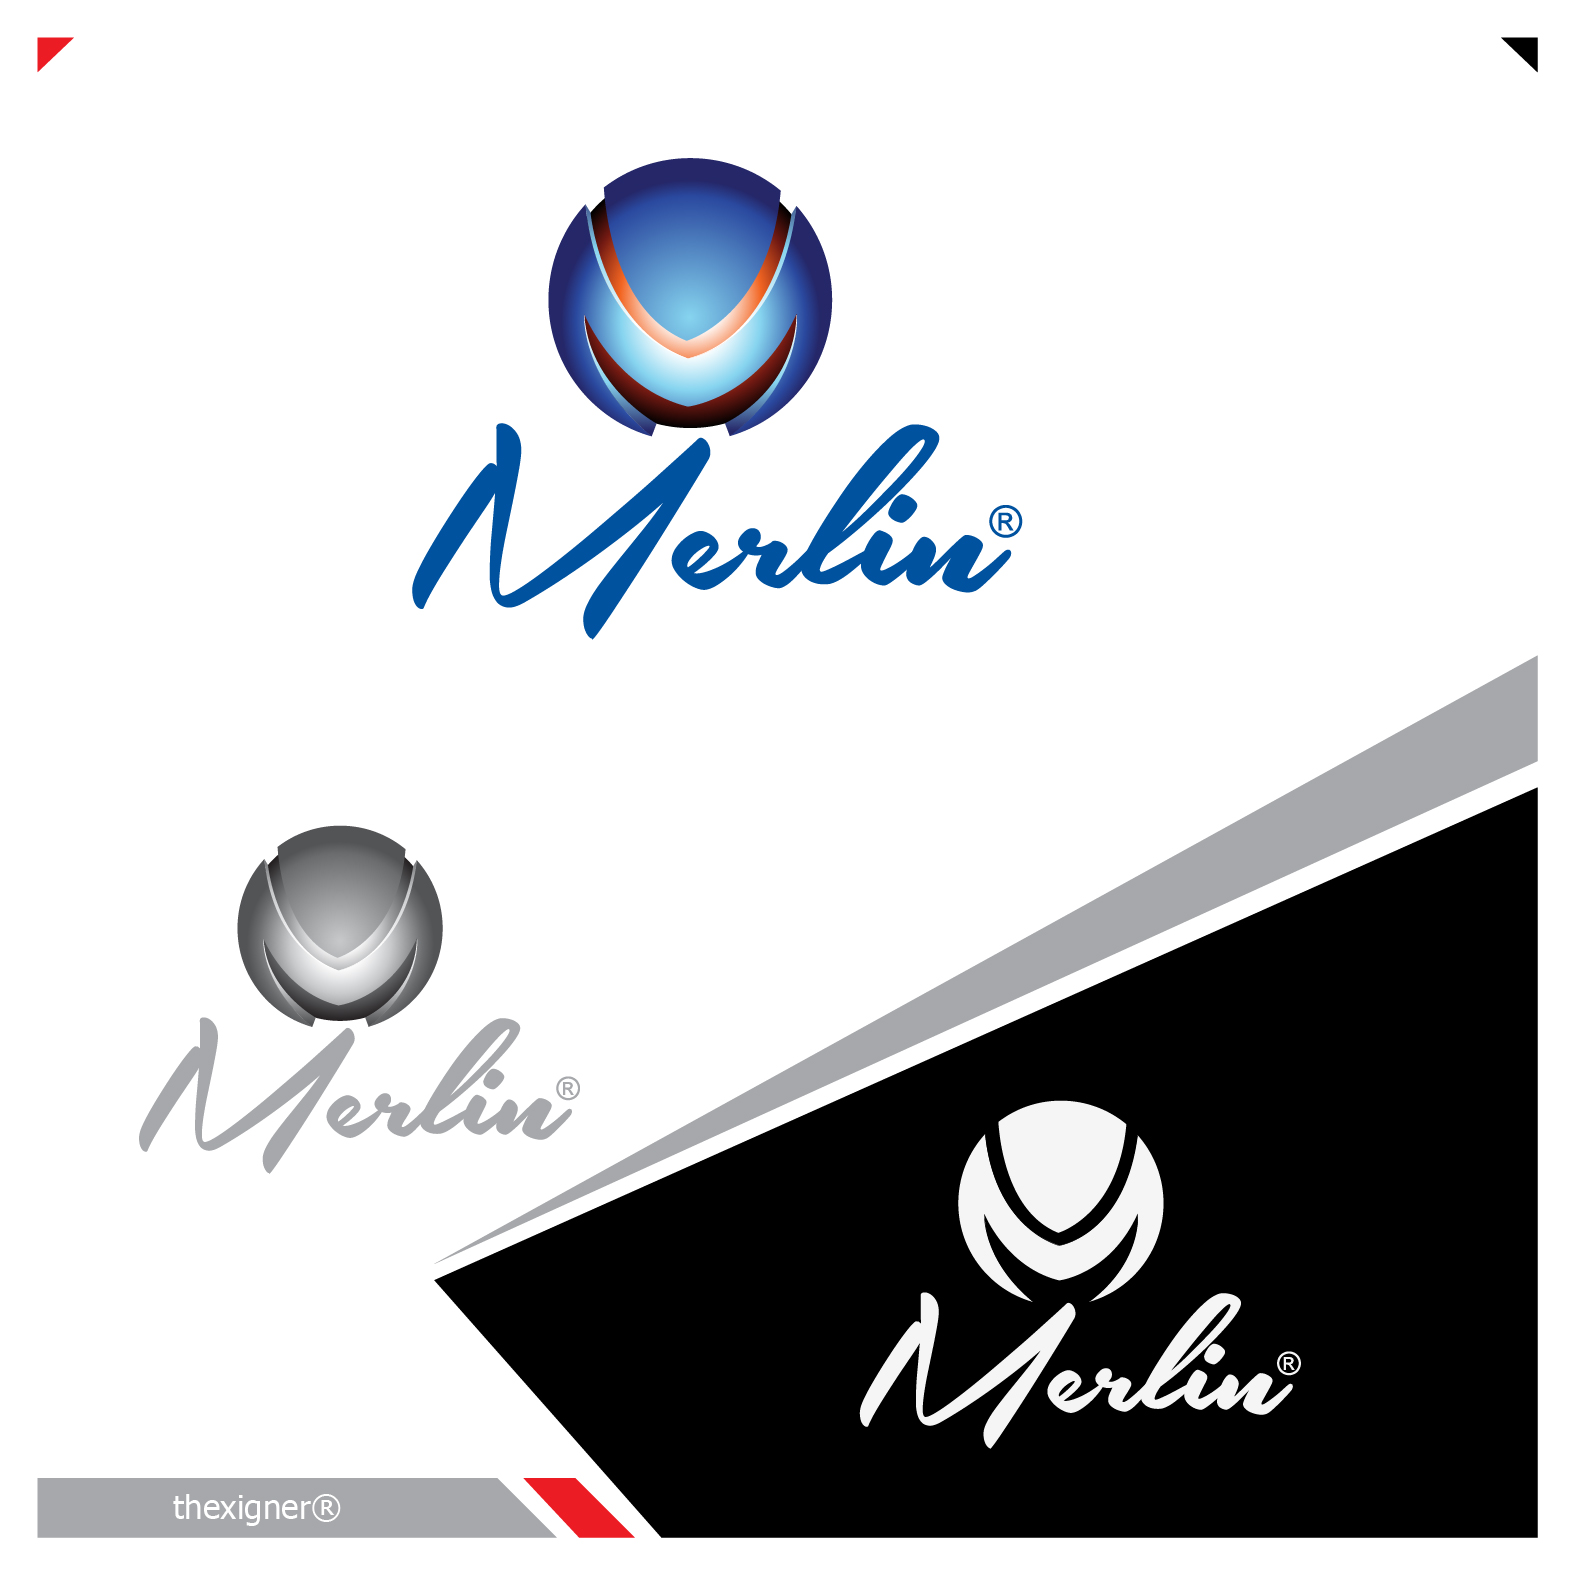 Logo Design by lagalag - Entry No. 152 in the Logo Design Contest Imaginative Logo Design for Merlin.